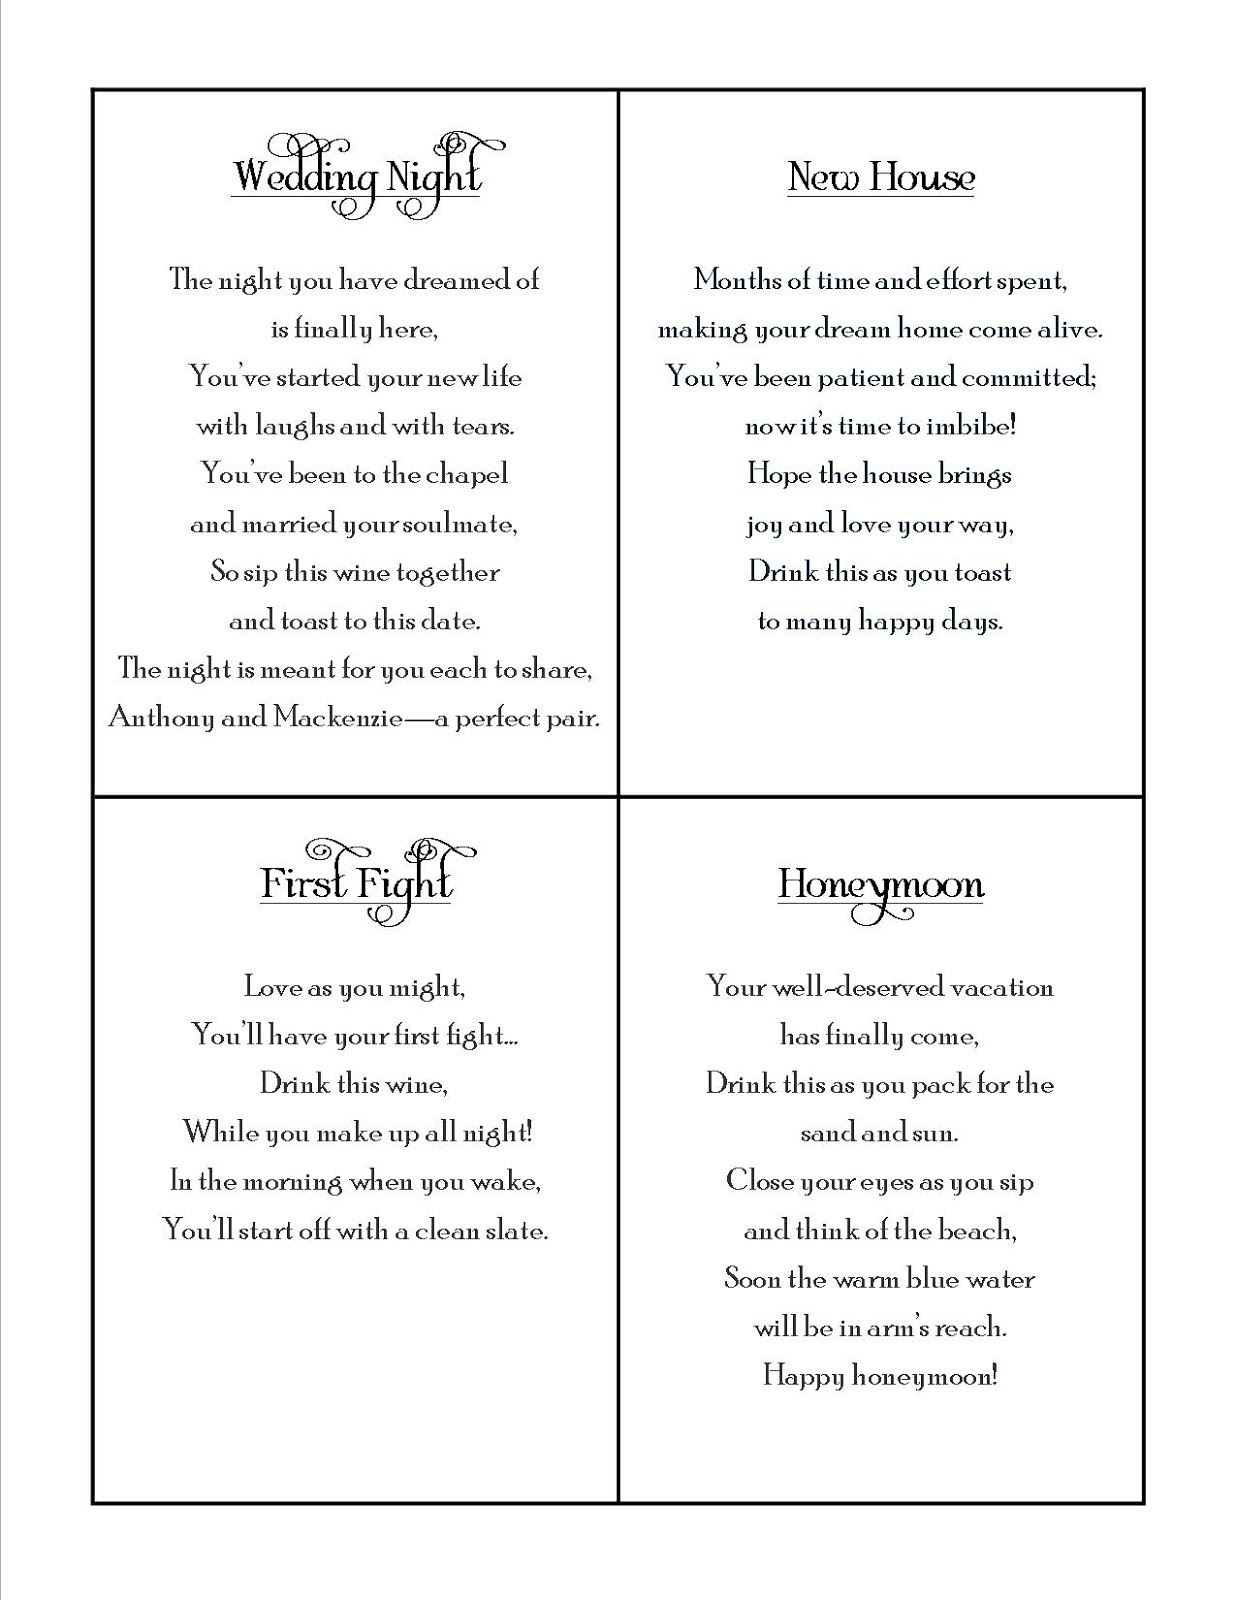 Wedding Shower Poems For Gift Cards : Bridal Party Poems quotes.lol-rofl.com